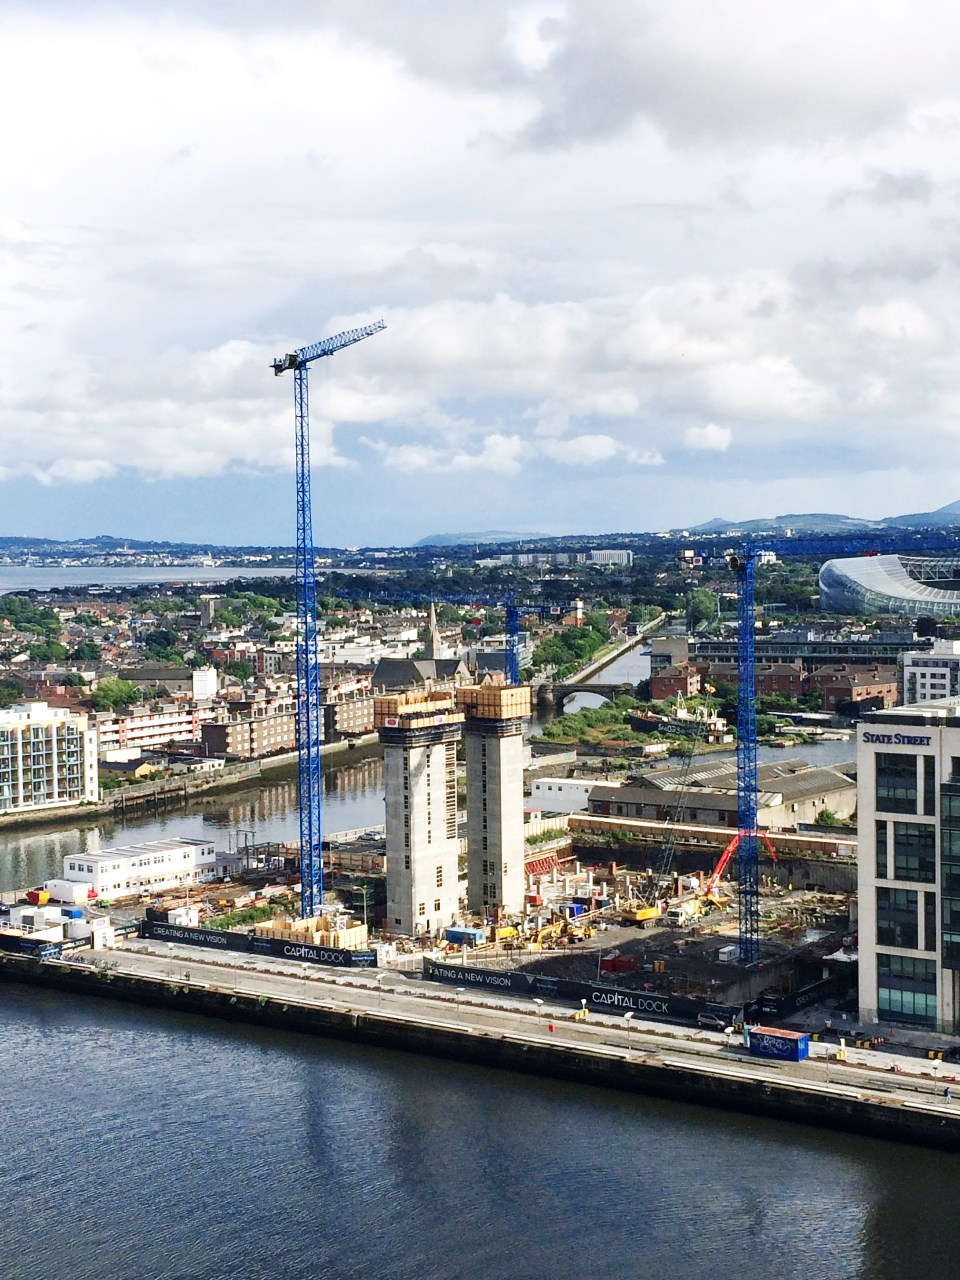 Irish Cranes currently has five cranes erected at the Capital Dock jobsite in Dublin, Ireland